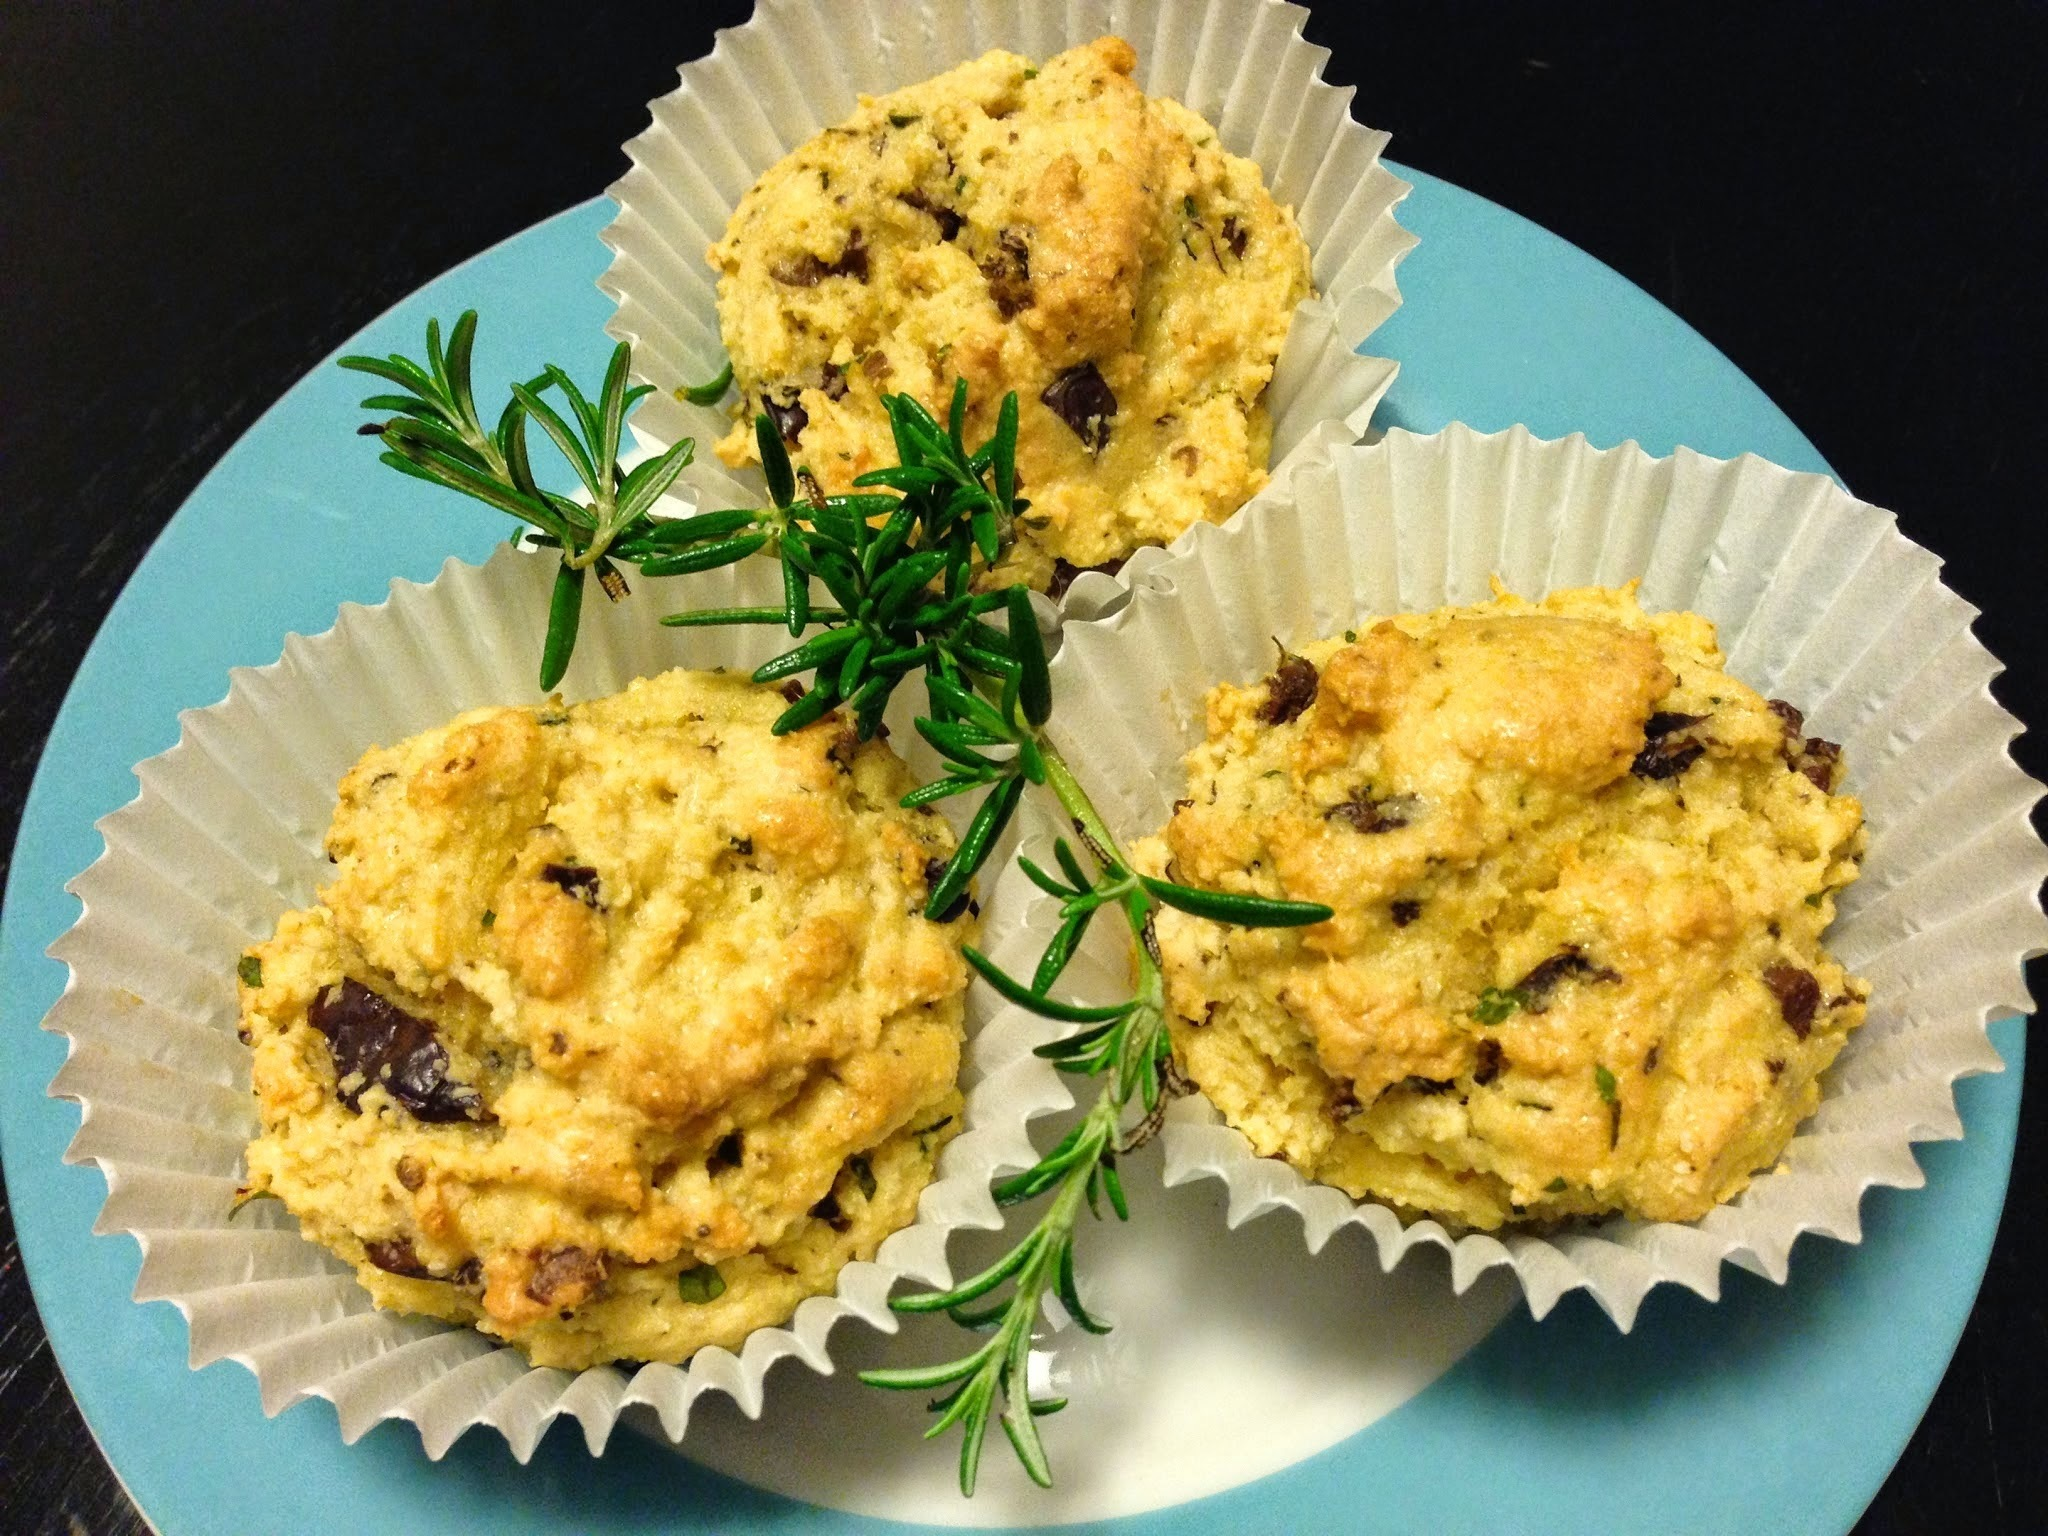 Olive and Herb Savoury Muffins